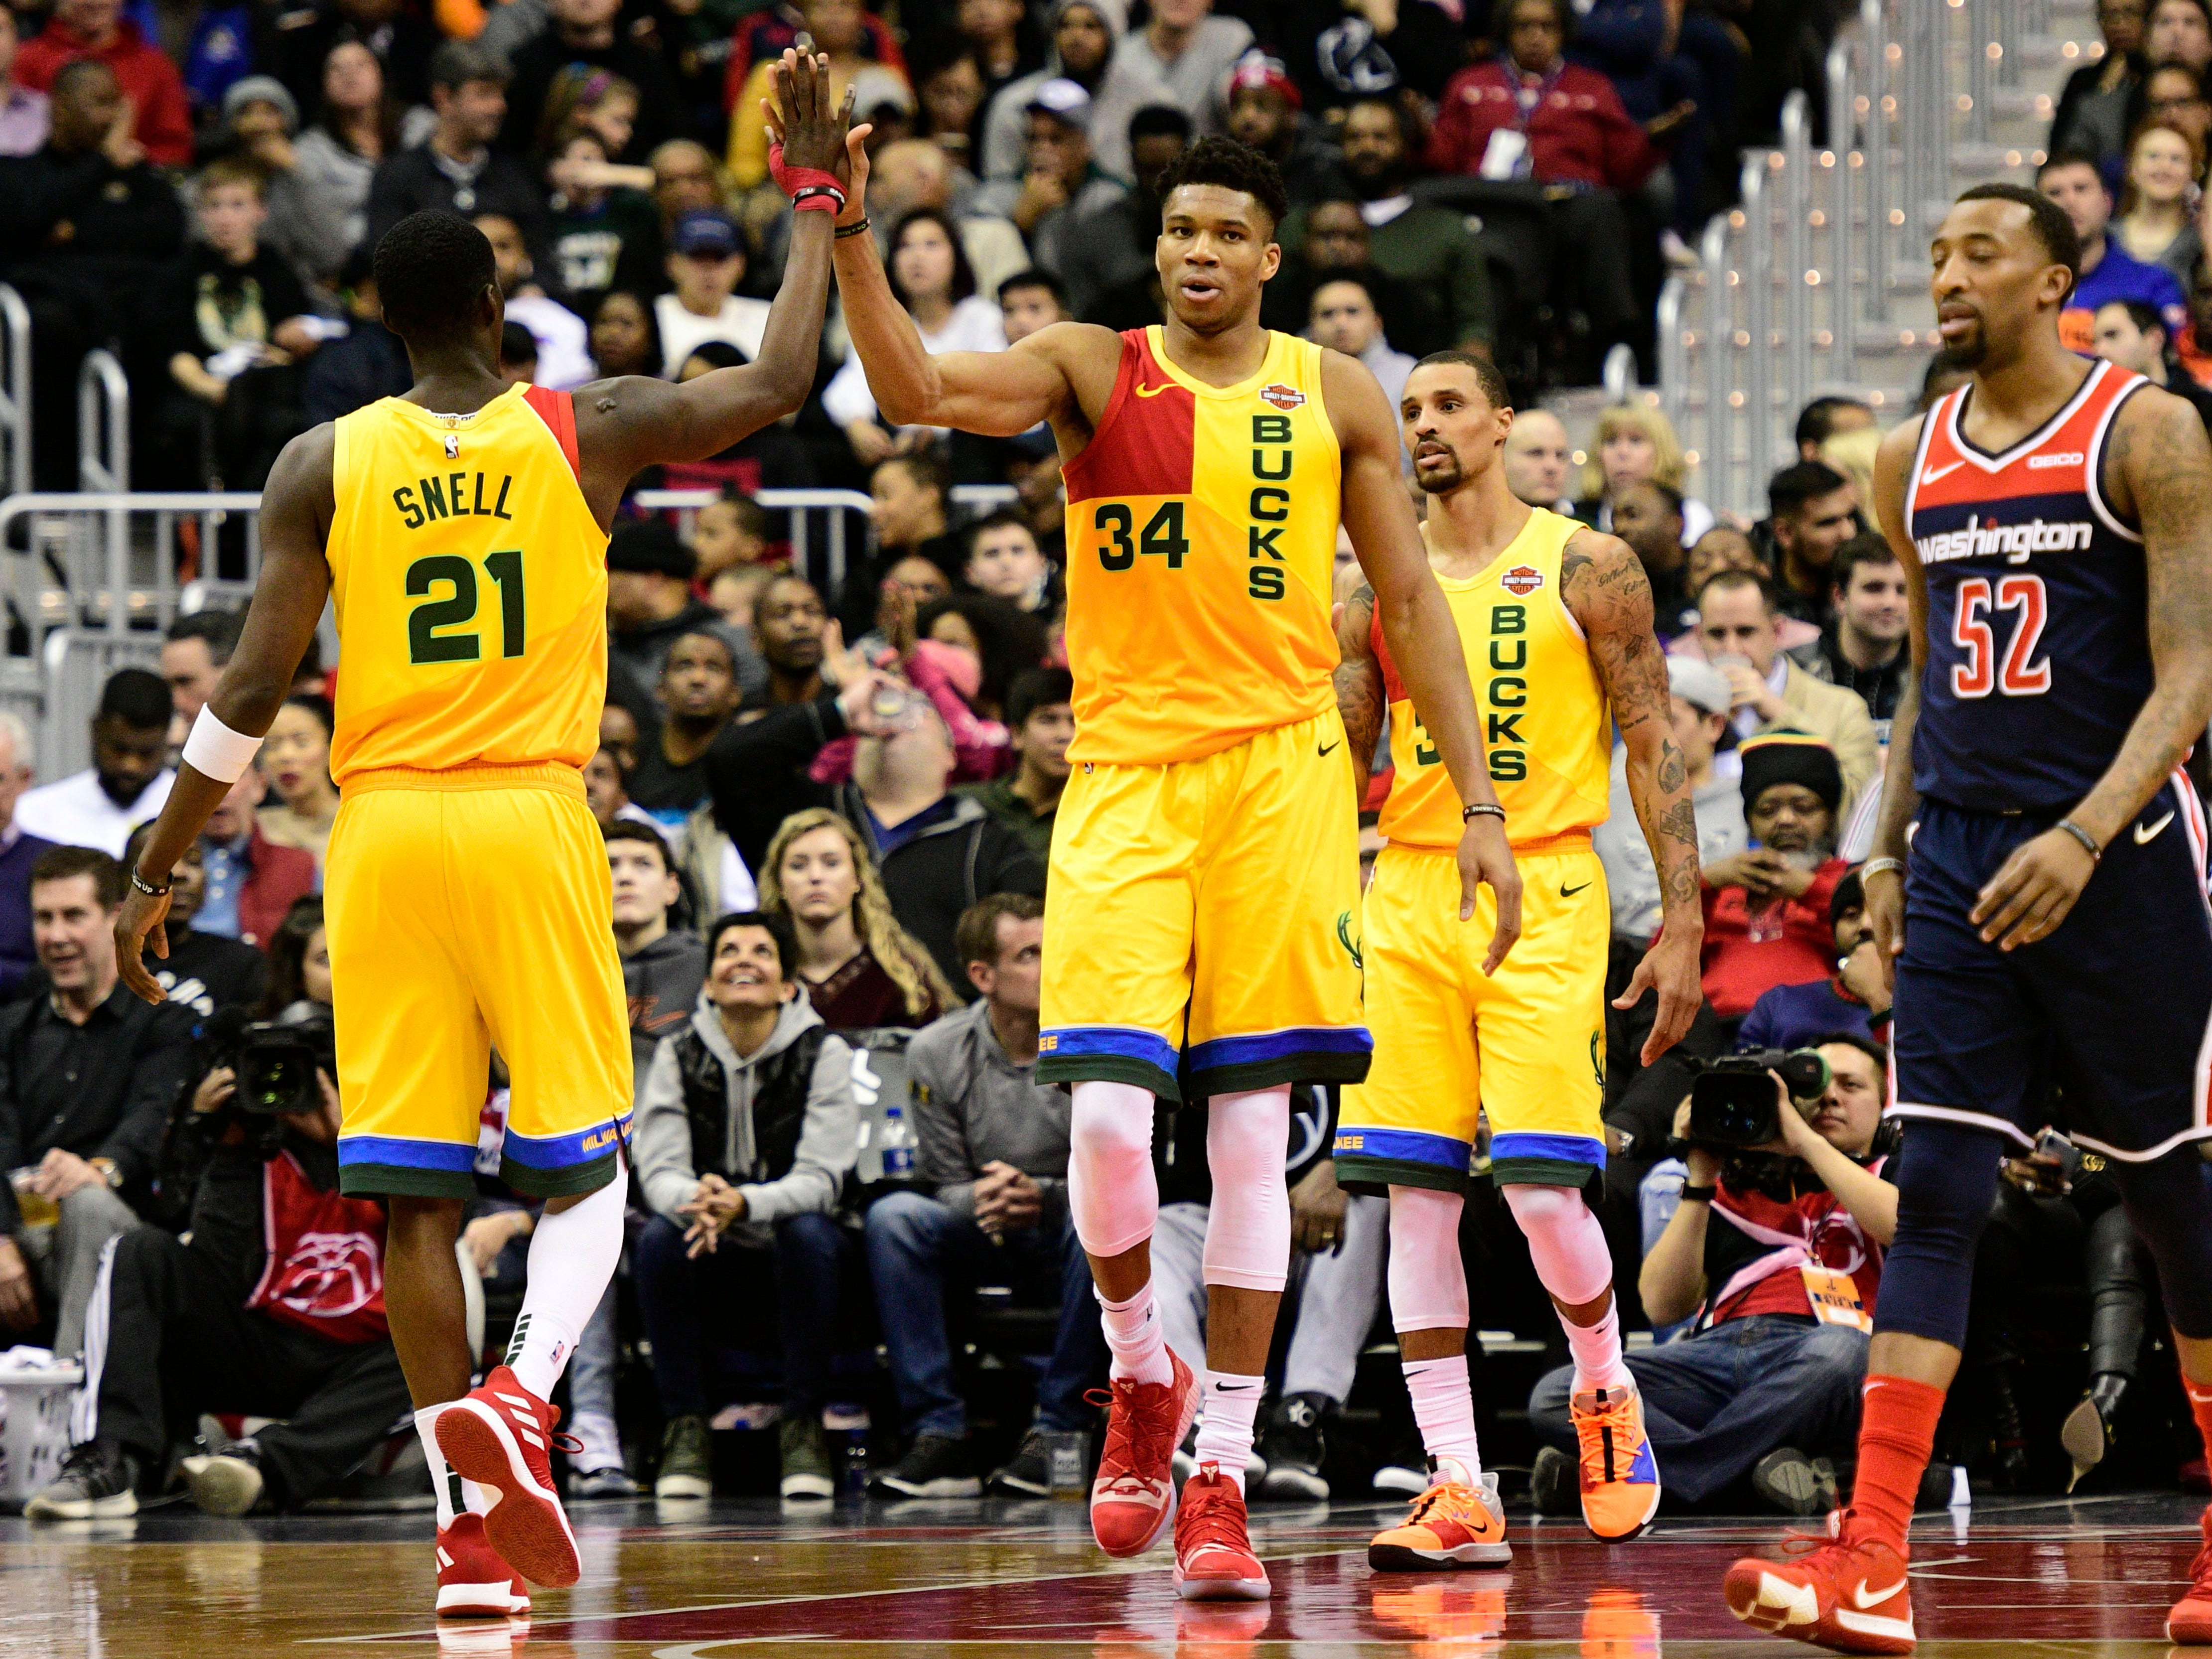 Giannis Antetokounmpo and Tony Snell of the Bucks high-five each other after the Greek Freak hit a shot while being fouled by a Wizards player in the second half Saturday.